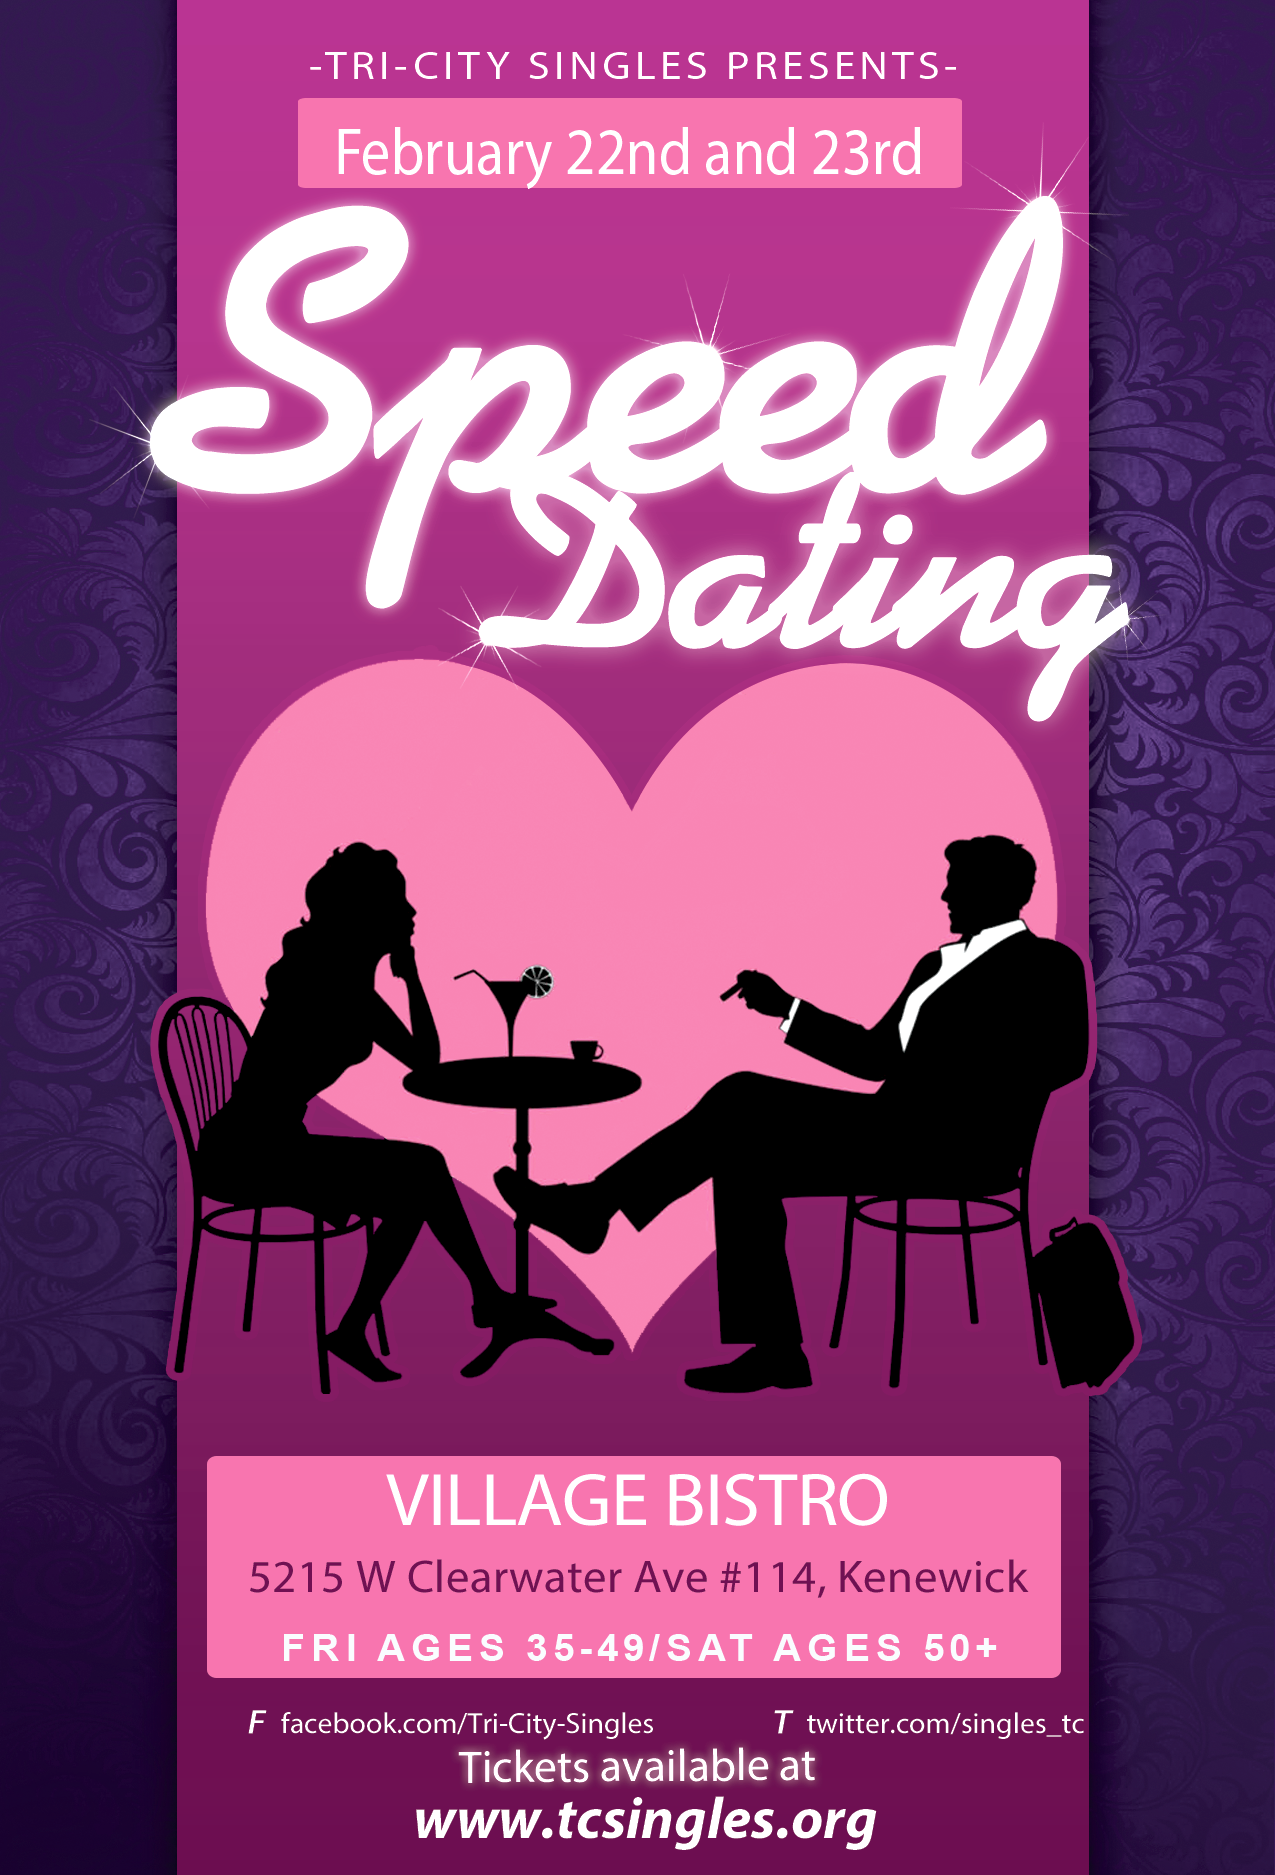 Speed Dating is Back! - Join us for Speed DatingFriday February 22nd for ages 30-45.Saturday February 23rd for ages 45+We will be at Village Bistro, 5215 W Clearwater Ave #114, Kennewick, WA 99336Time: 7:00 sharp start time. Do Not be late!Tickets must be purchased by 6:00 pm Thursday February 21st. We reserve the right to cancel this event if the minimum number of participants have not registered. In the case of cancelation, the full amount of the ticket purchase will be refunded.